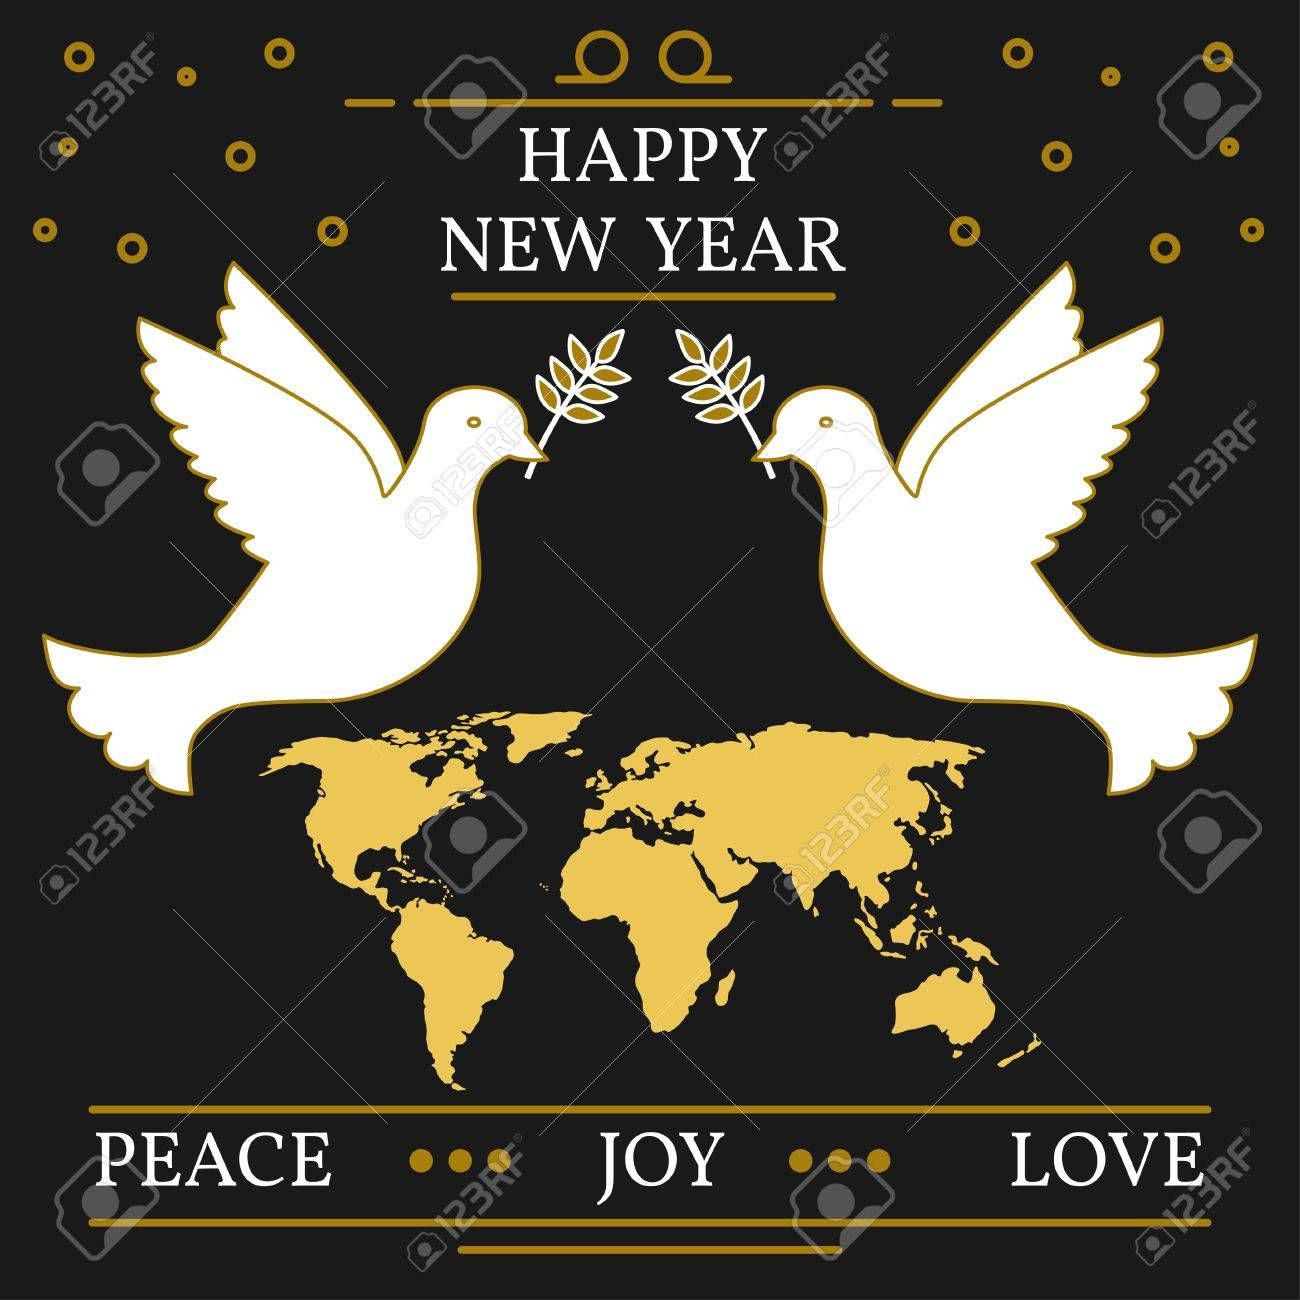 Happy new year, peace, joy and love greeting card. EPS10